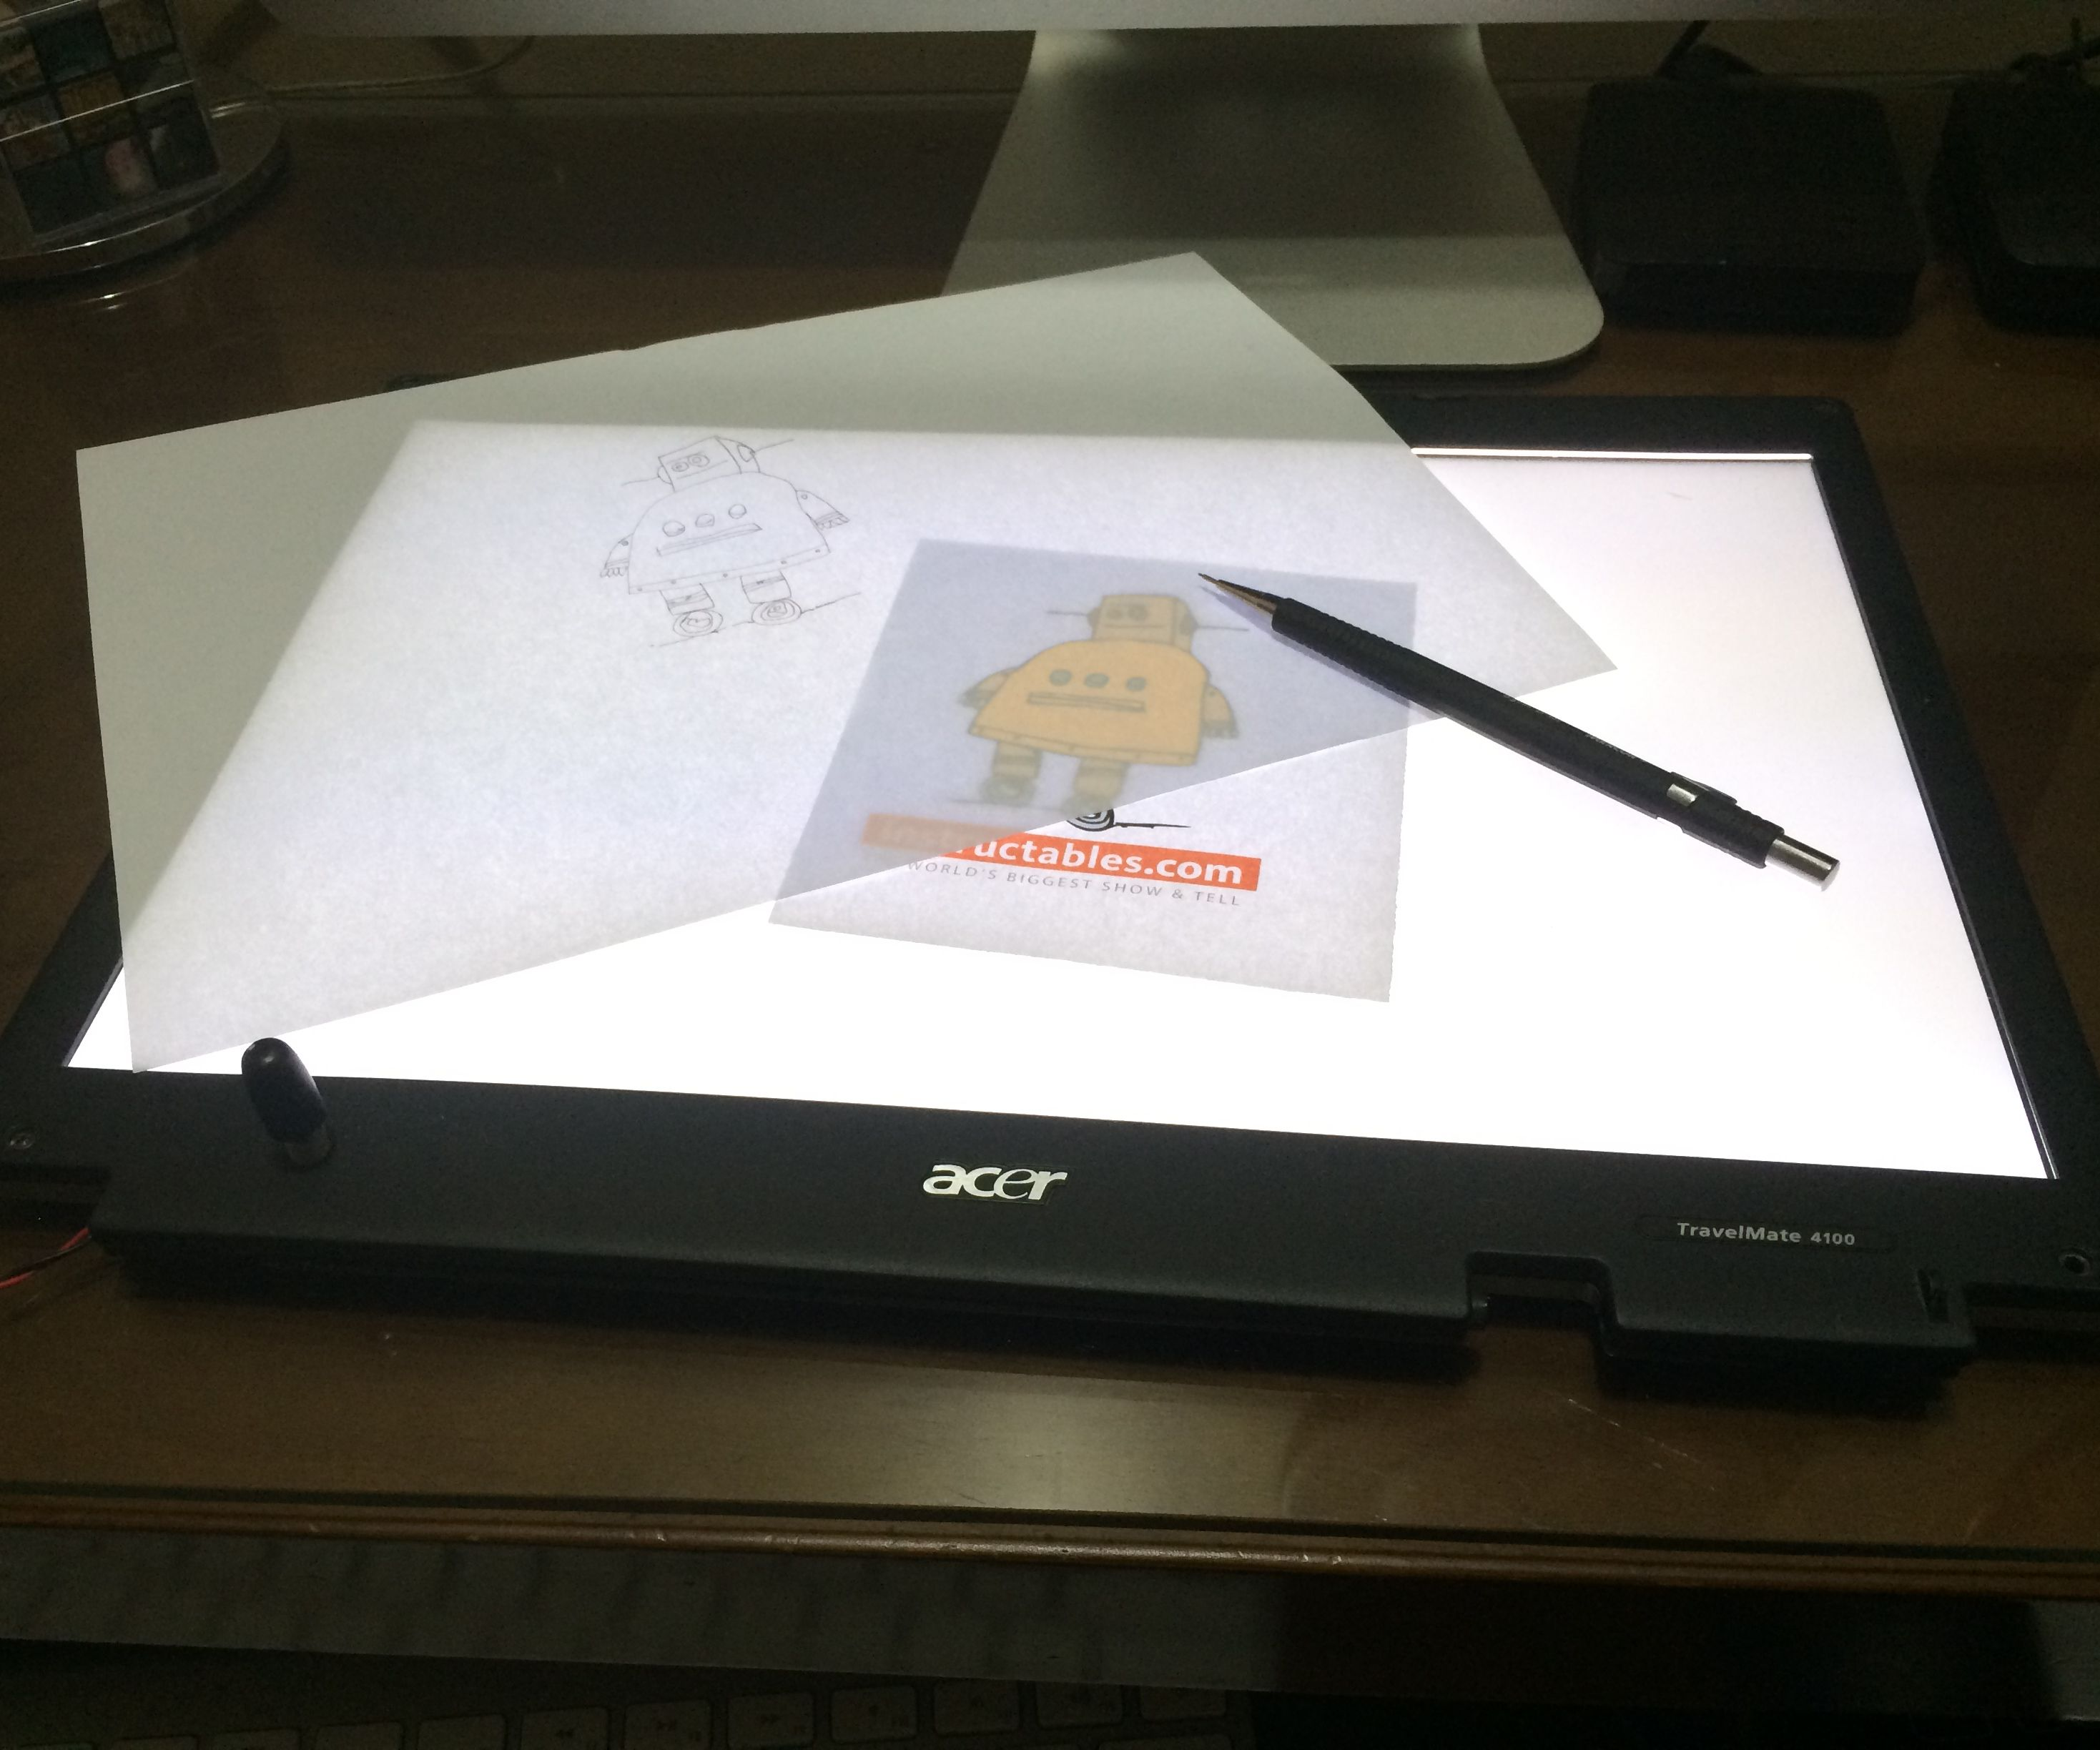 Turn a broken laptop screen into a portable light table for drawing